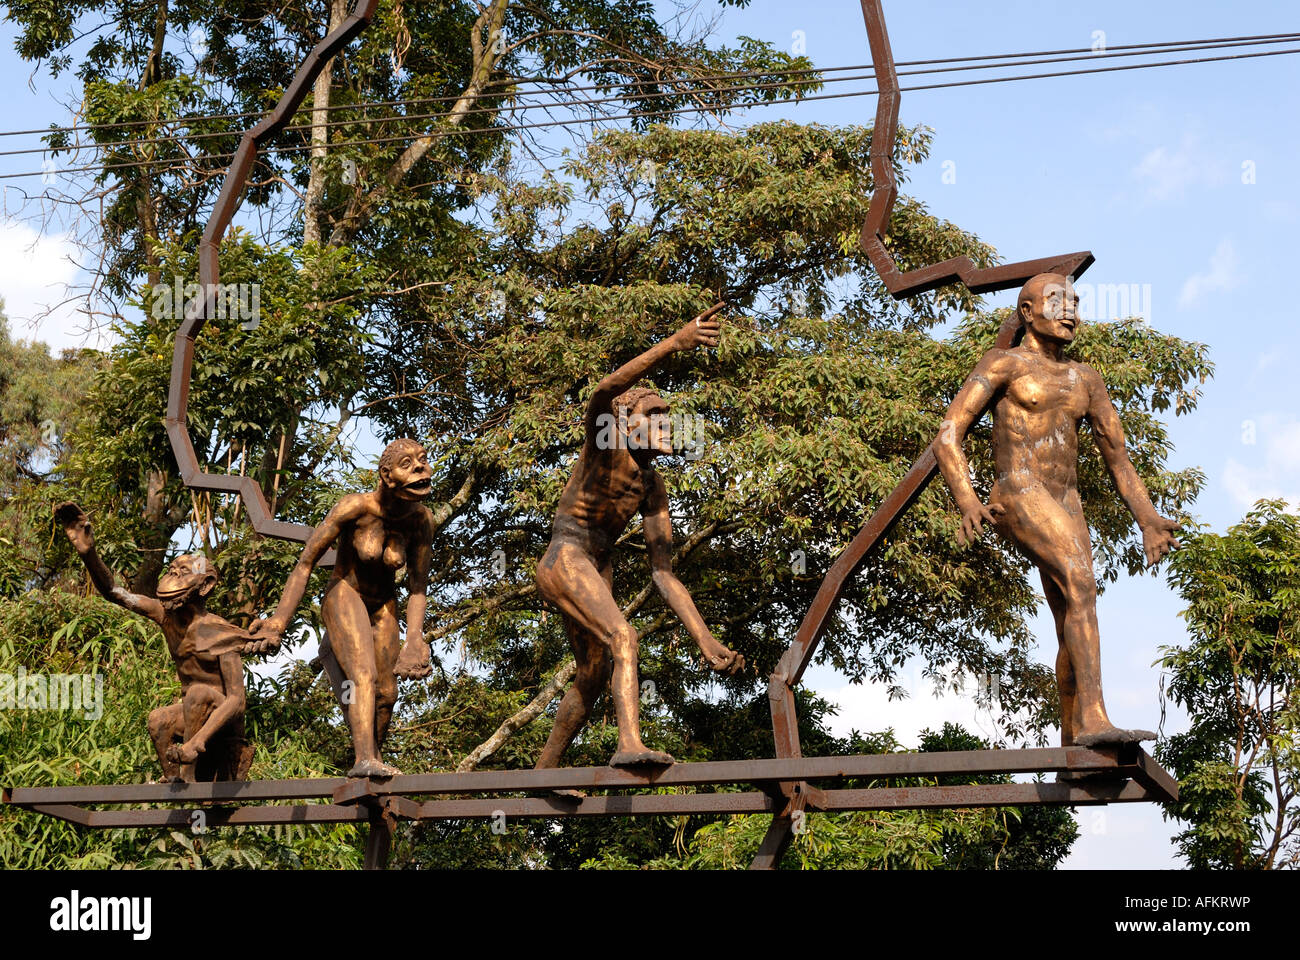 A bronze statue showing the evolution of man outside the National Museum Nairobi Kenya East Africa - Stock Image